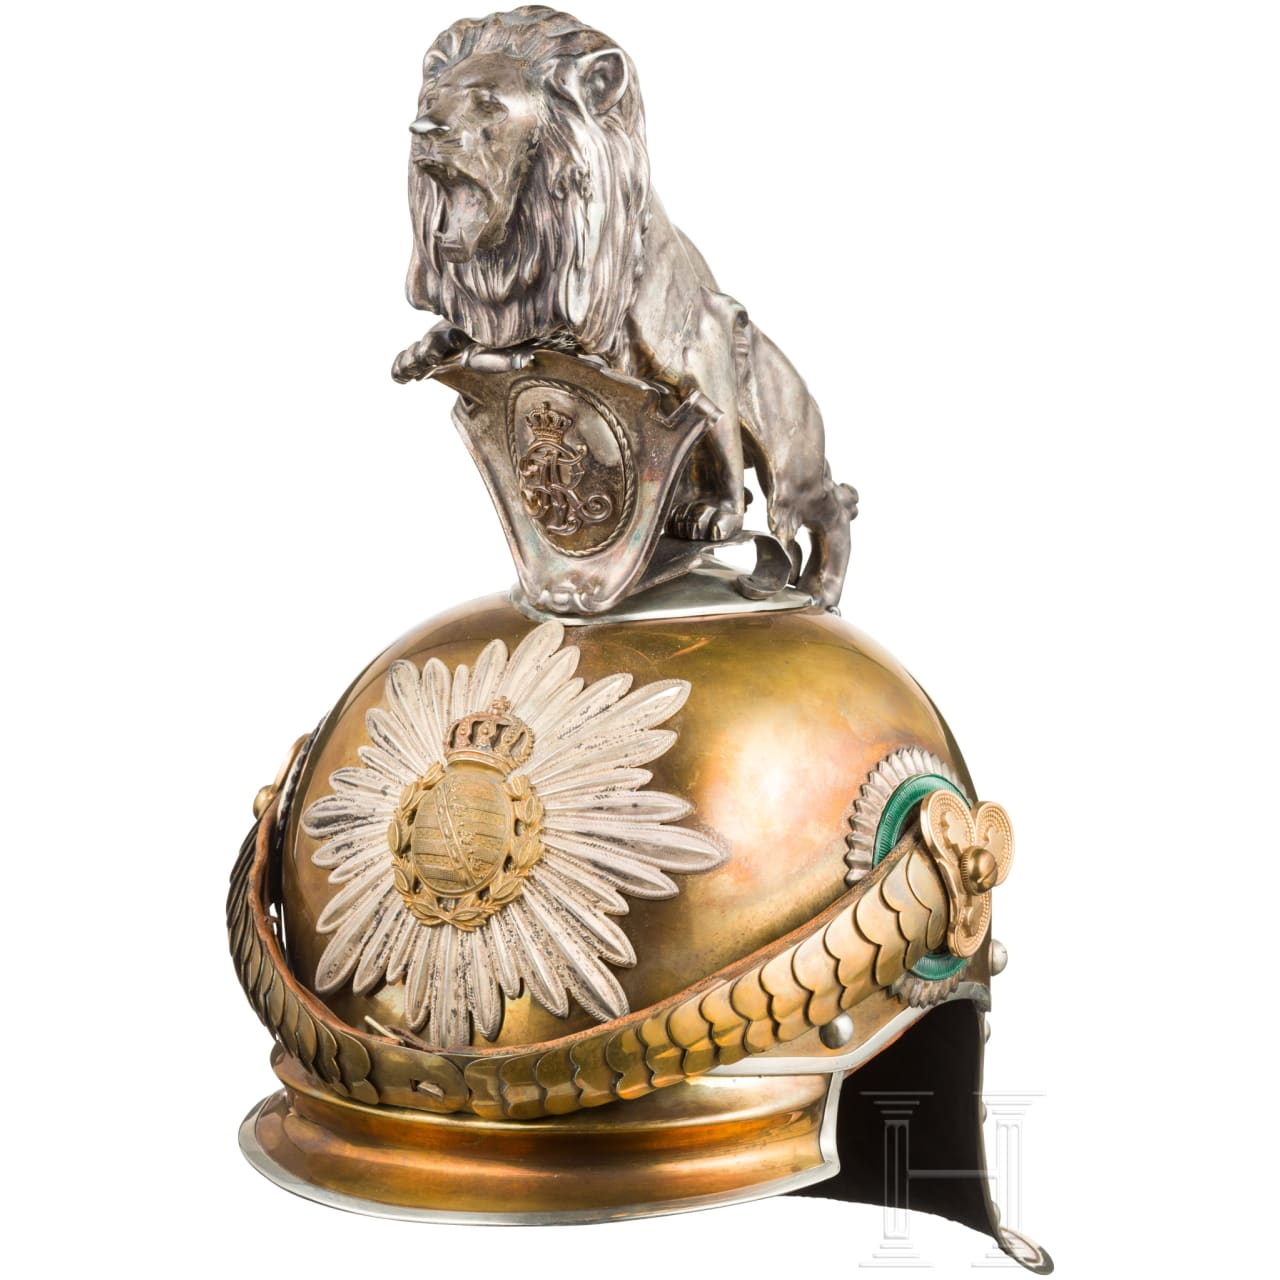 Helmet for officers of the guard cavalry, around 1900